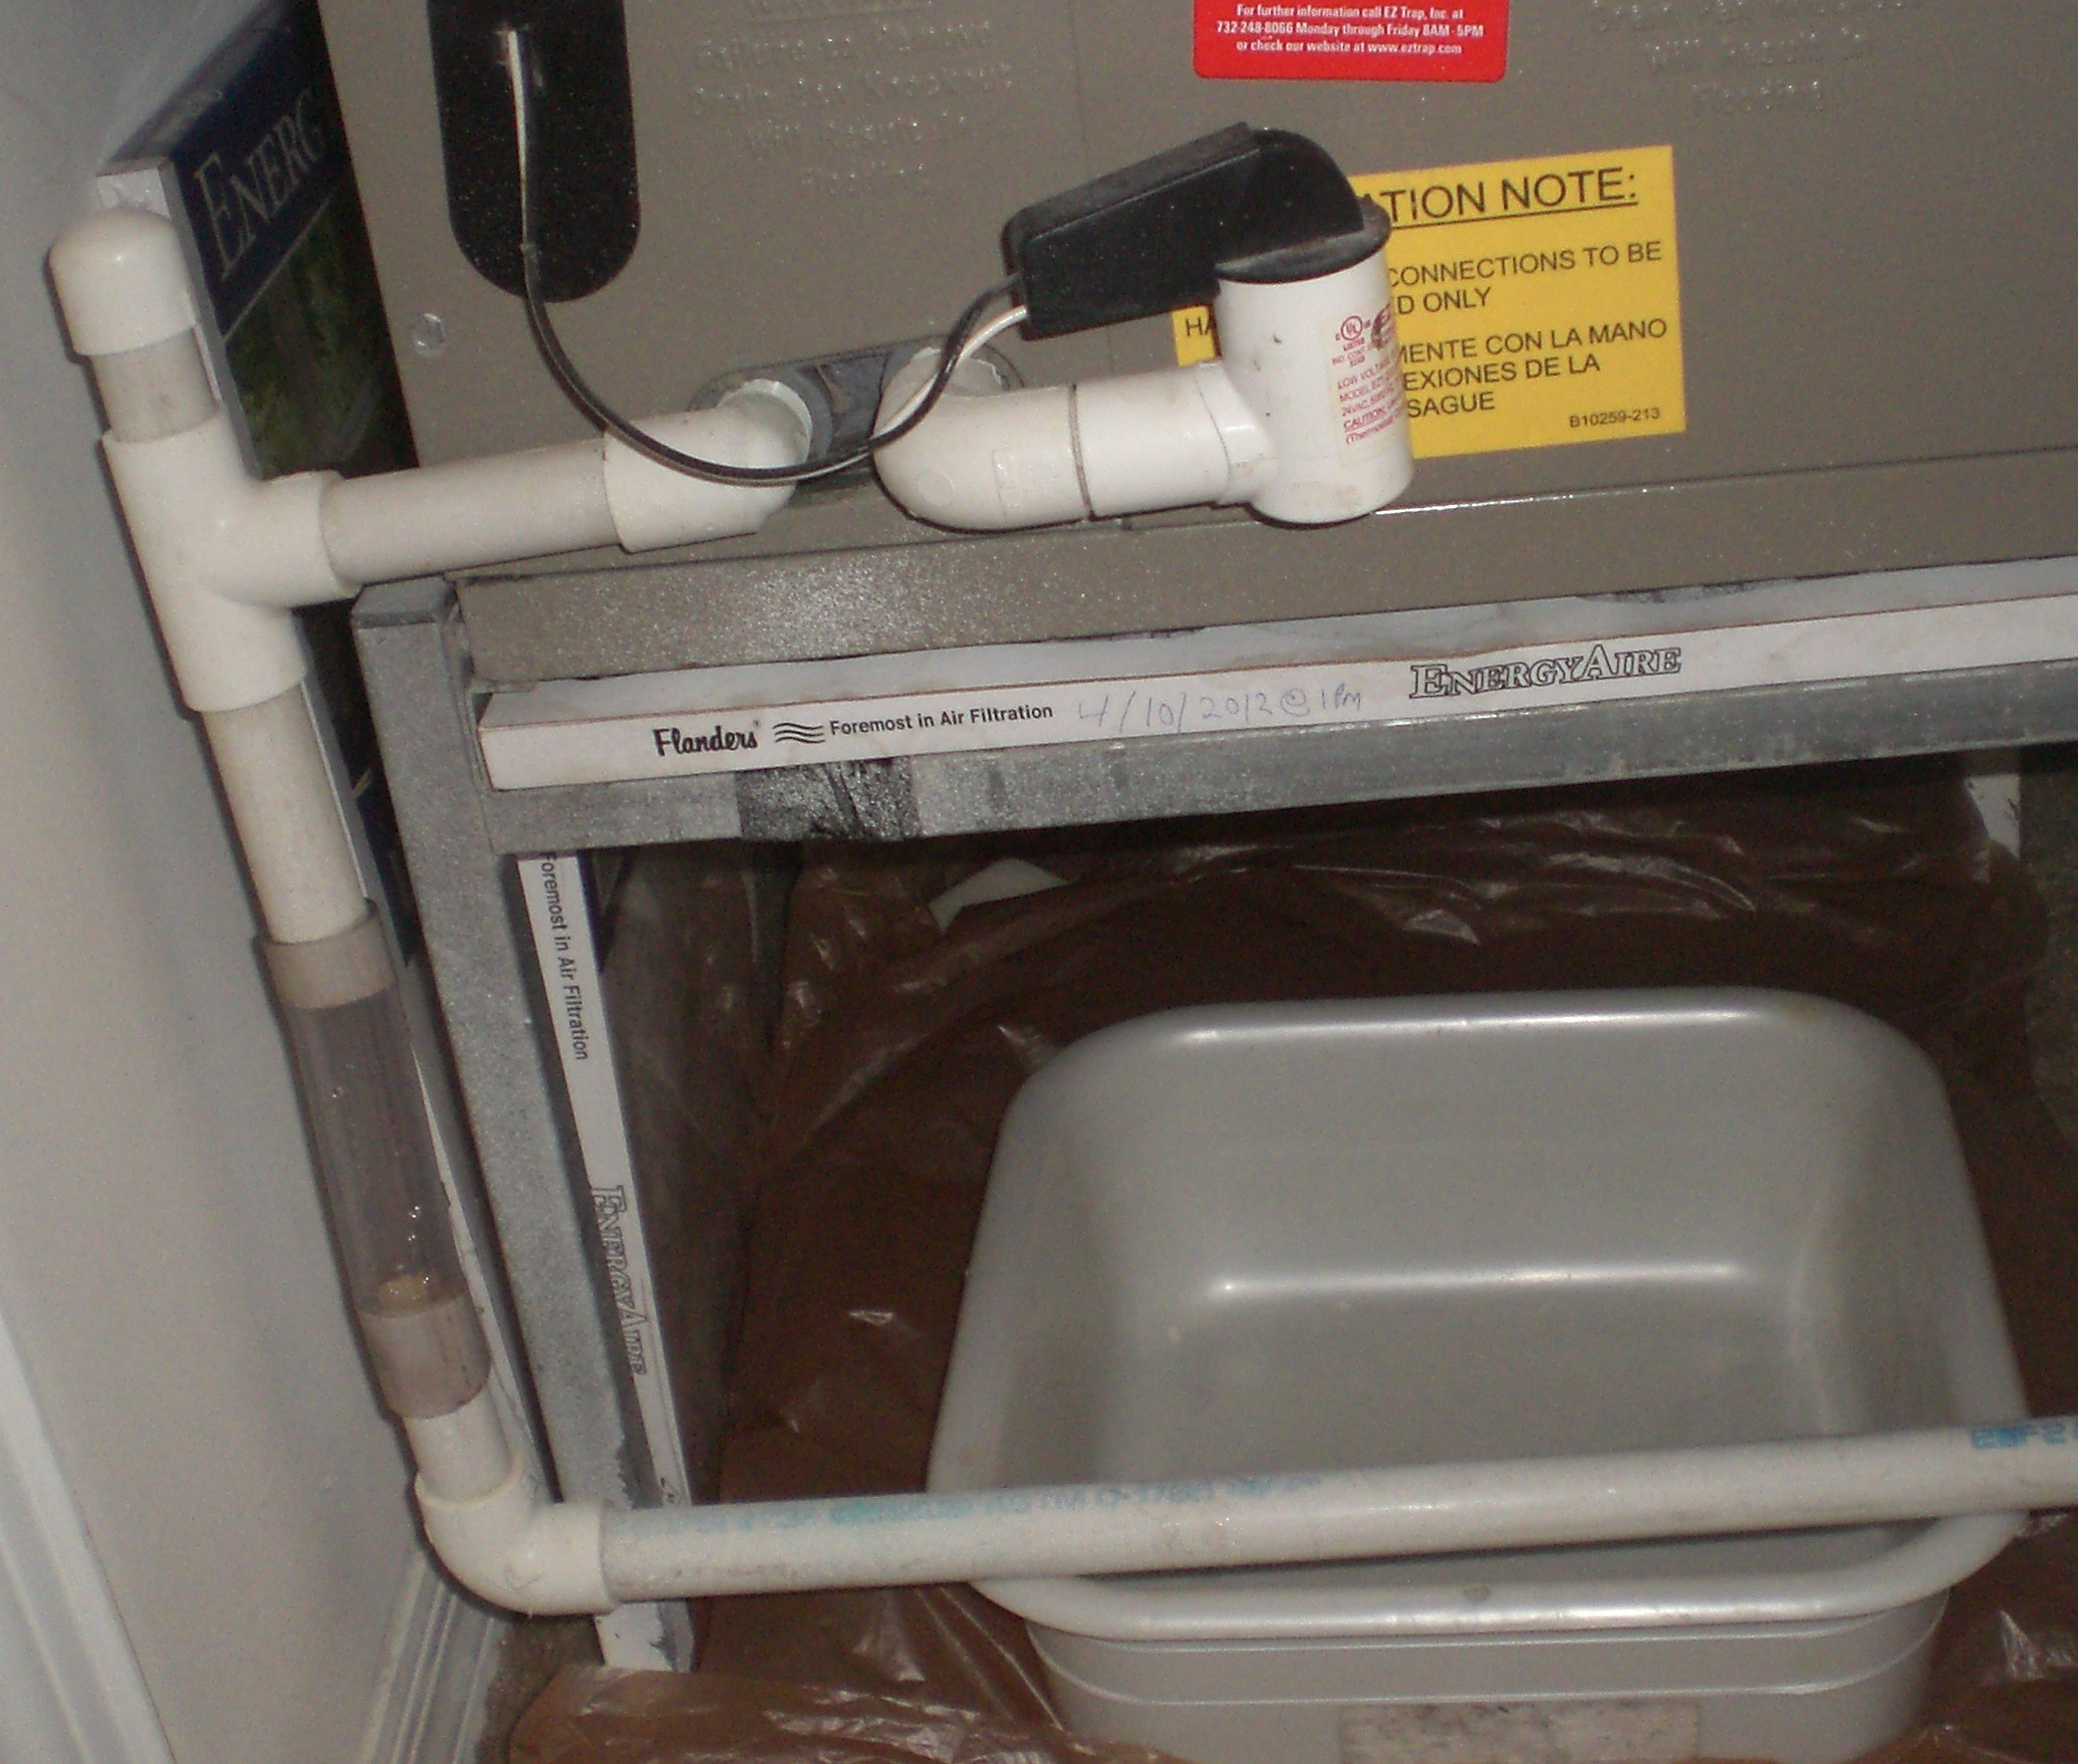 A C Leaking Water Window Air Conditioner Tank Vac